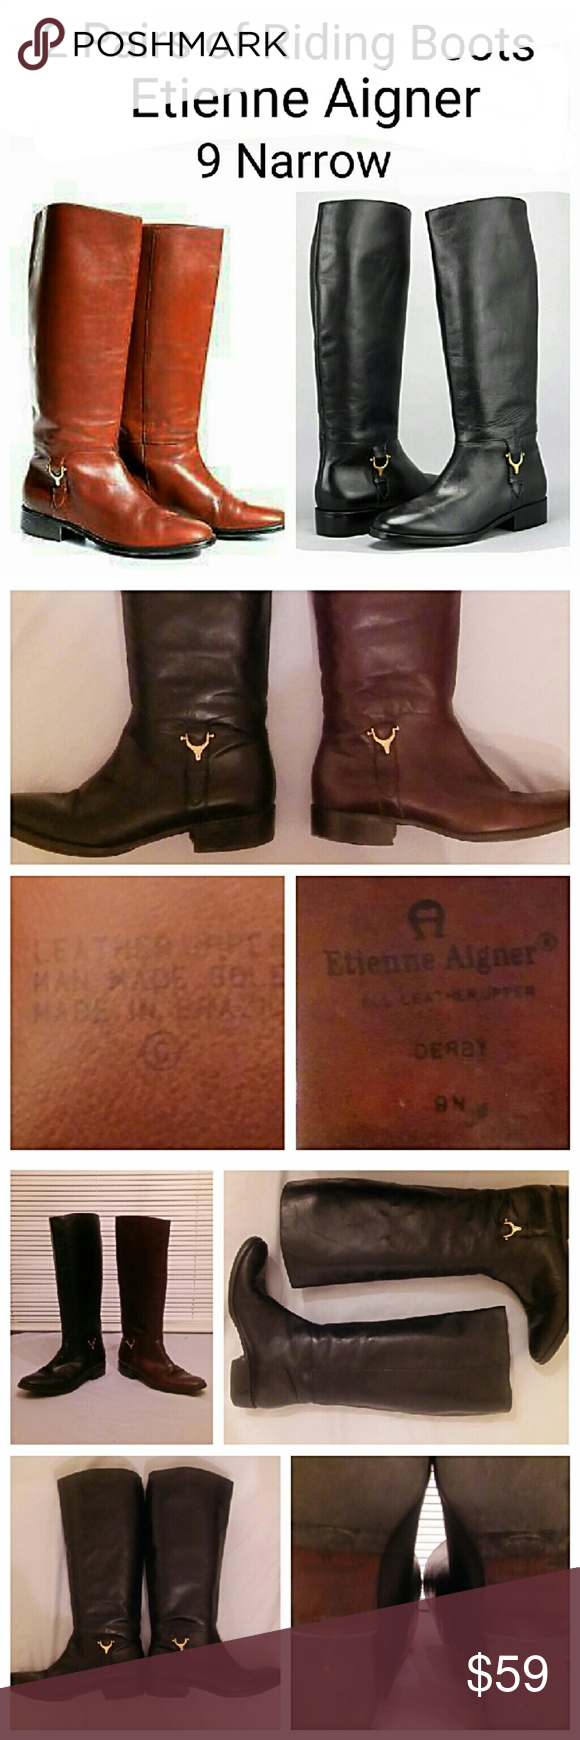 2 Pair Leather Derby Riding Boots 2 pair of the same brand, style & size boots - 1 black & 1 brown. Get an early jump on Fall. Etienne Aigner Shoes Winter & Rain Boots